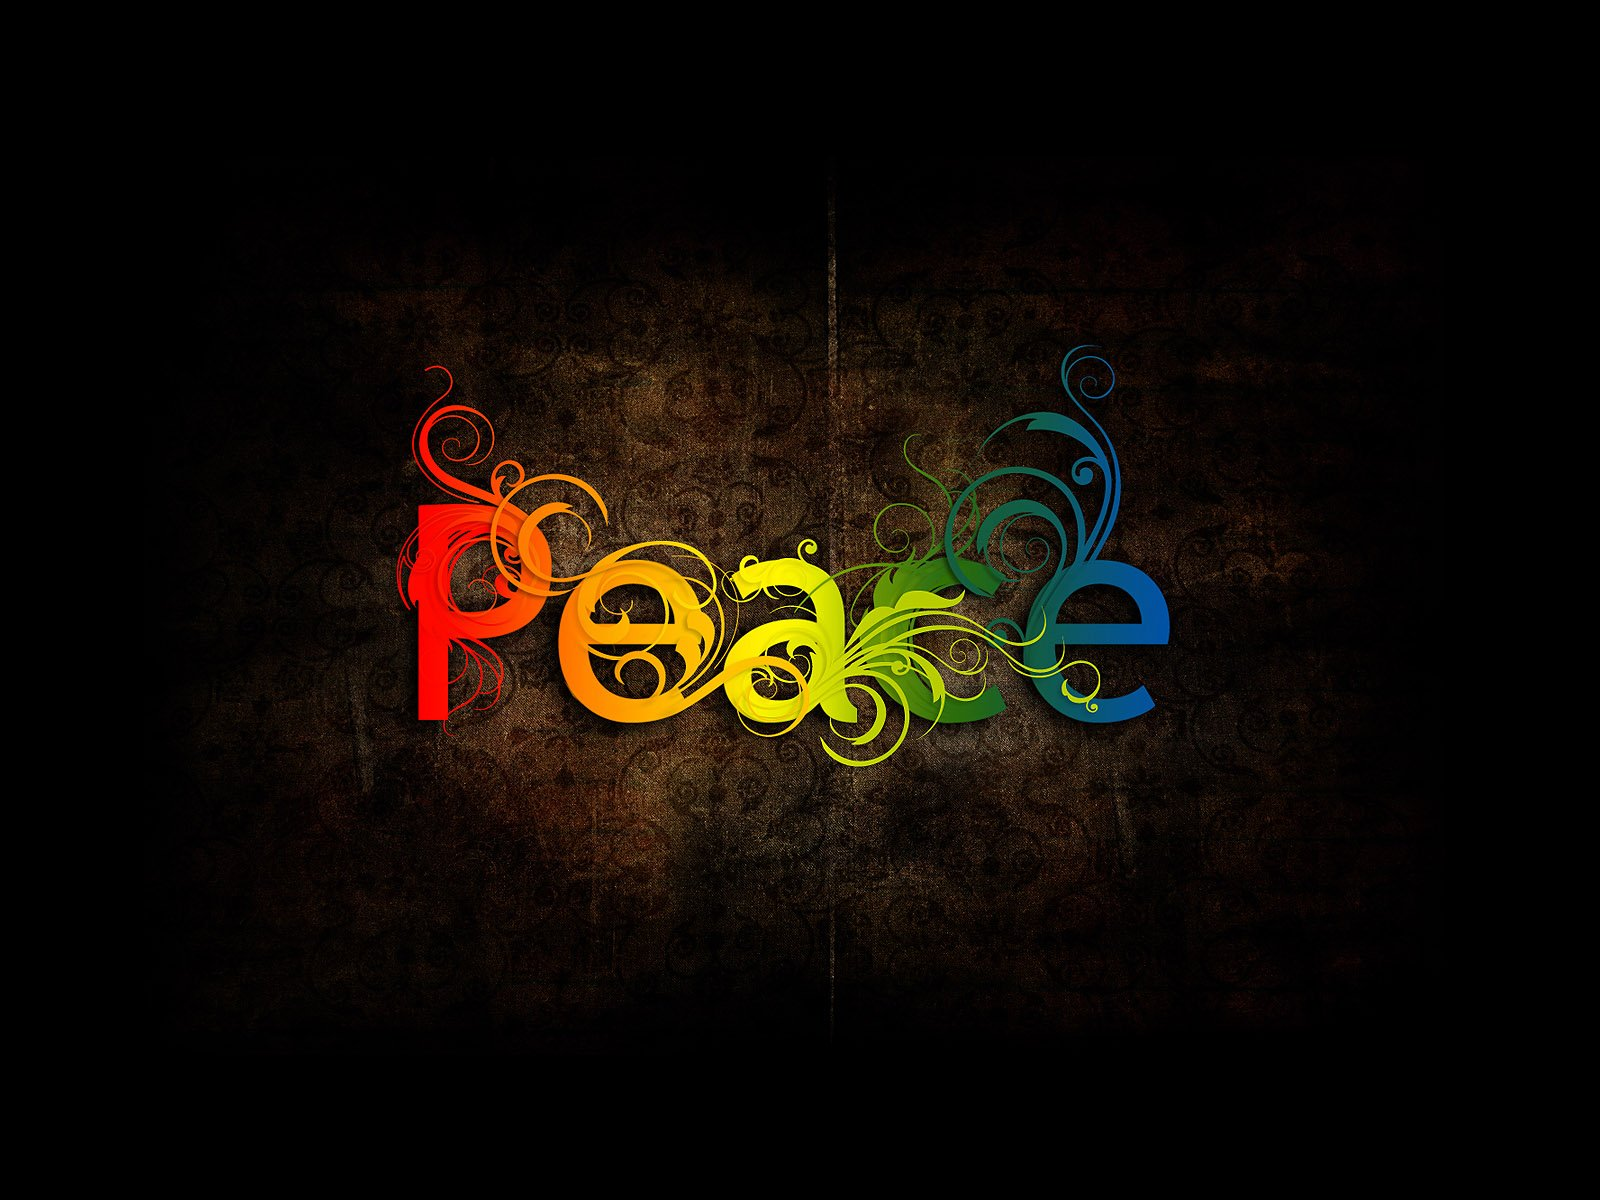 Ethnic Peace Wallpaper - Ethnic Peace Wallpaper